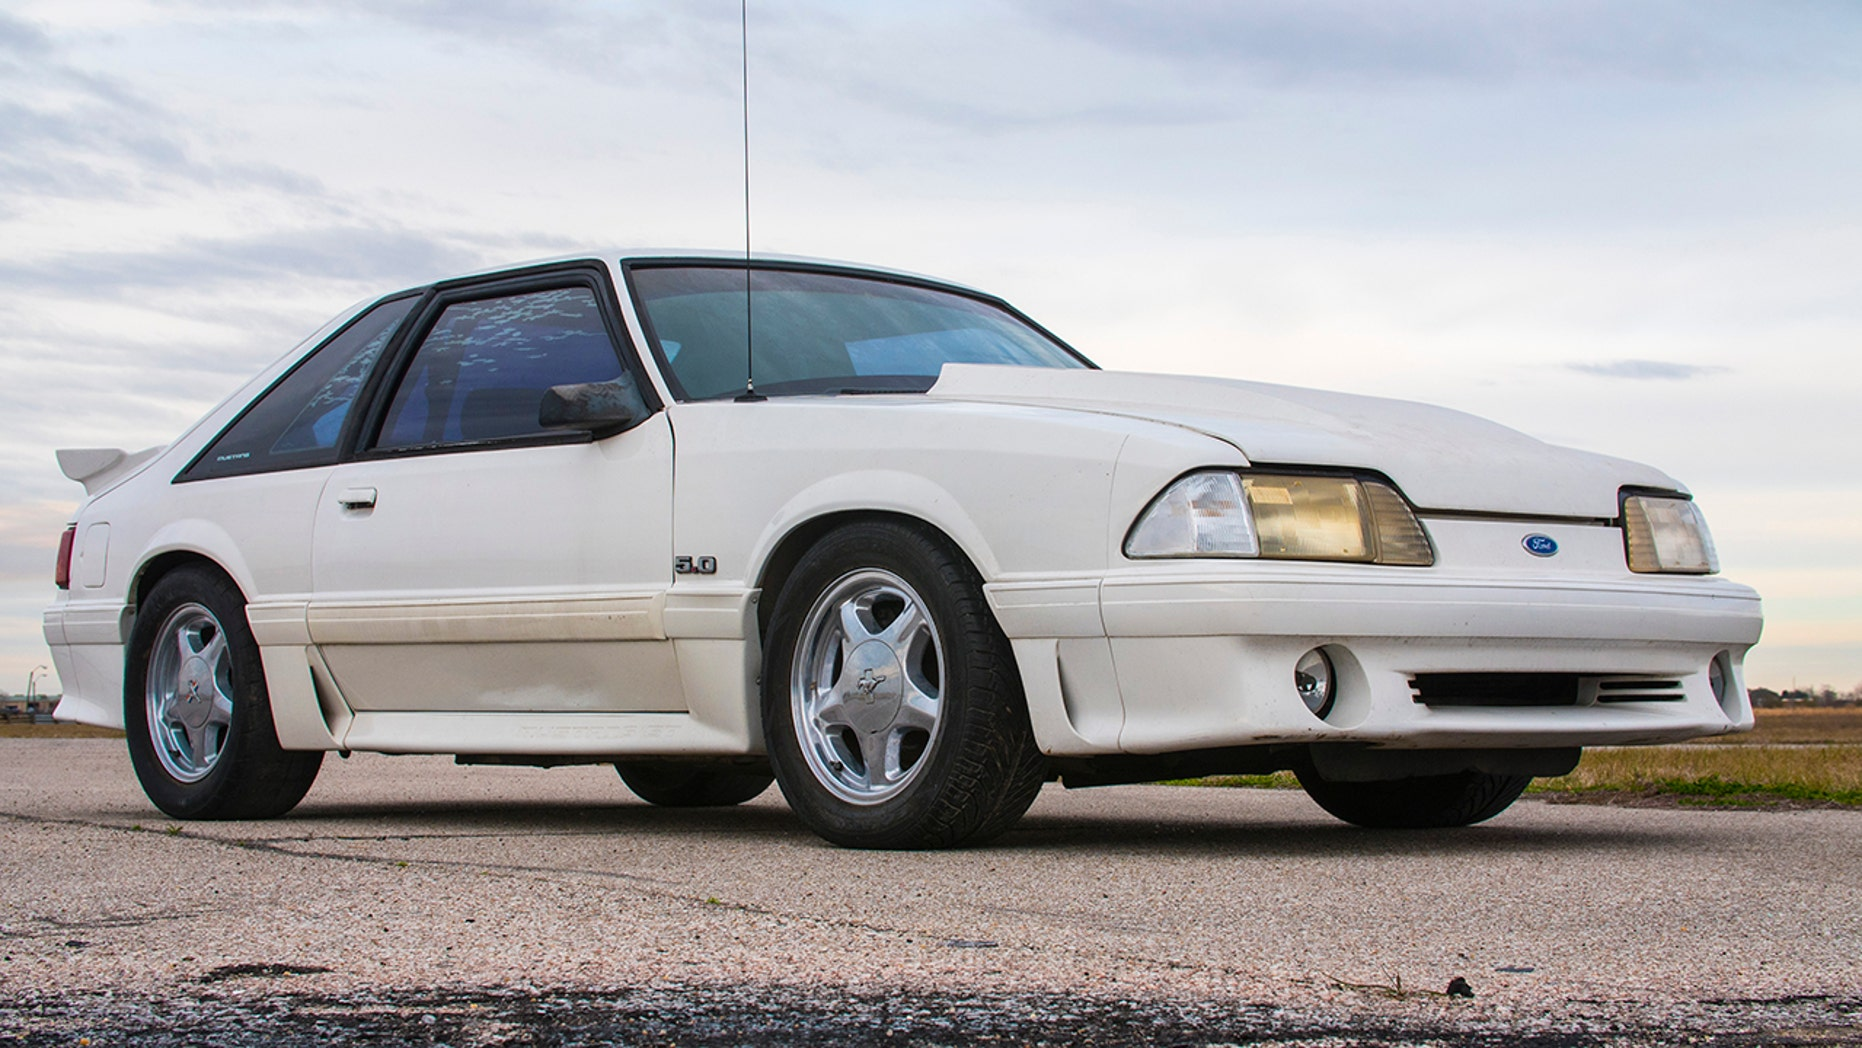 Ford restores Mustang for man